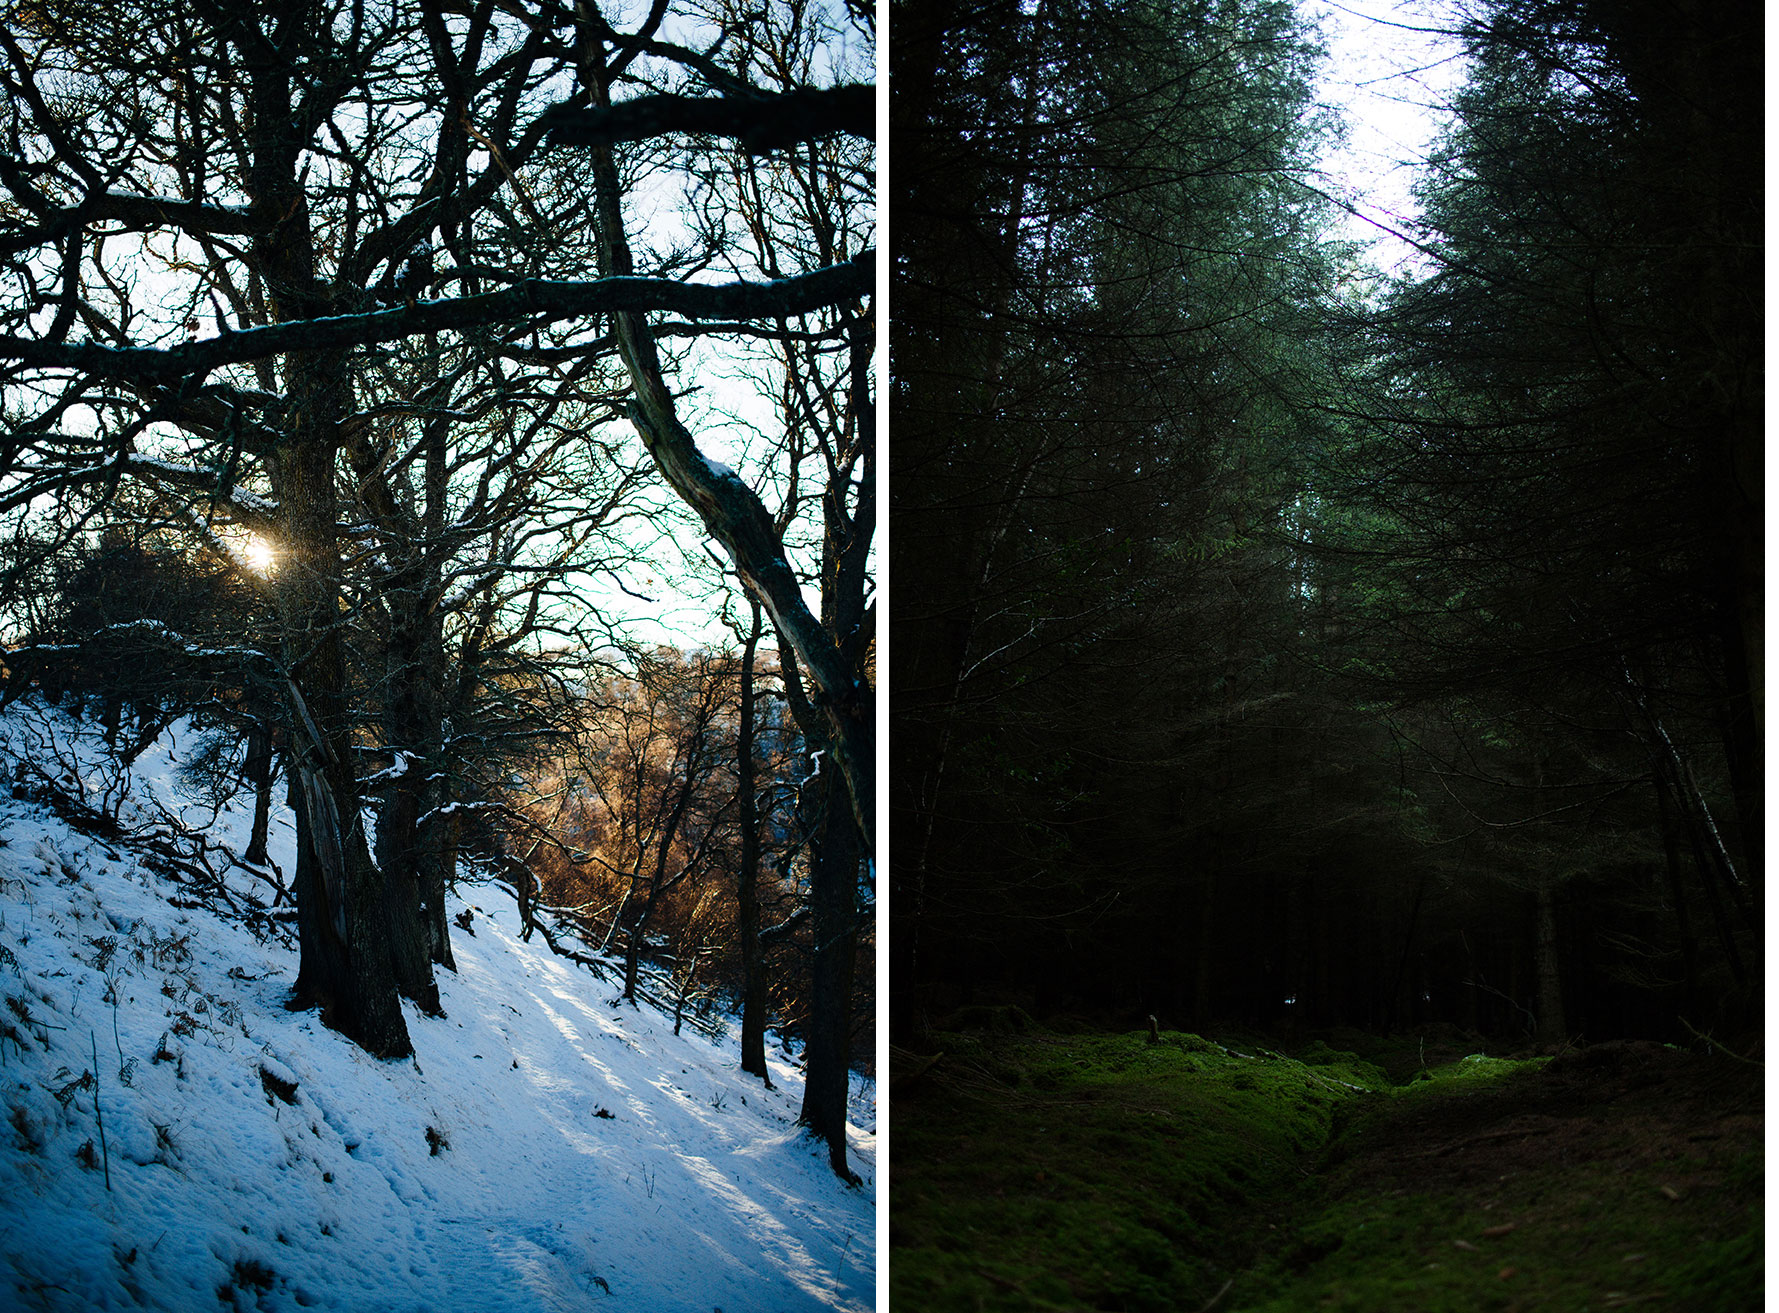 Two forests in comparison - photos taken on the same day within 2 hours of each other. Approx distance between locations: 20 miles.